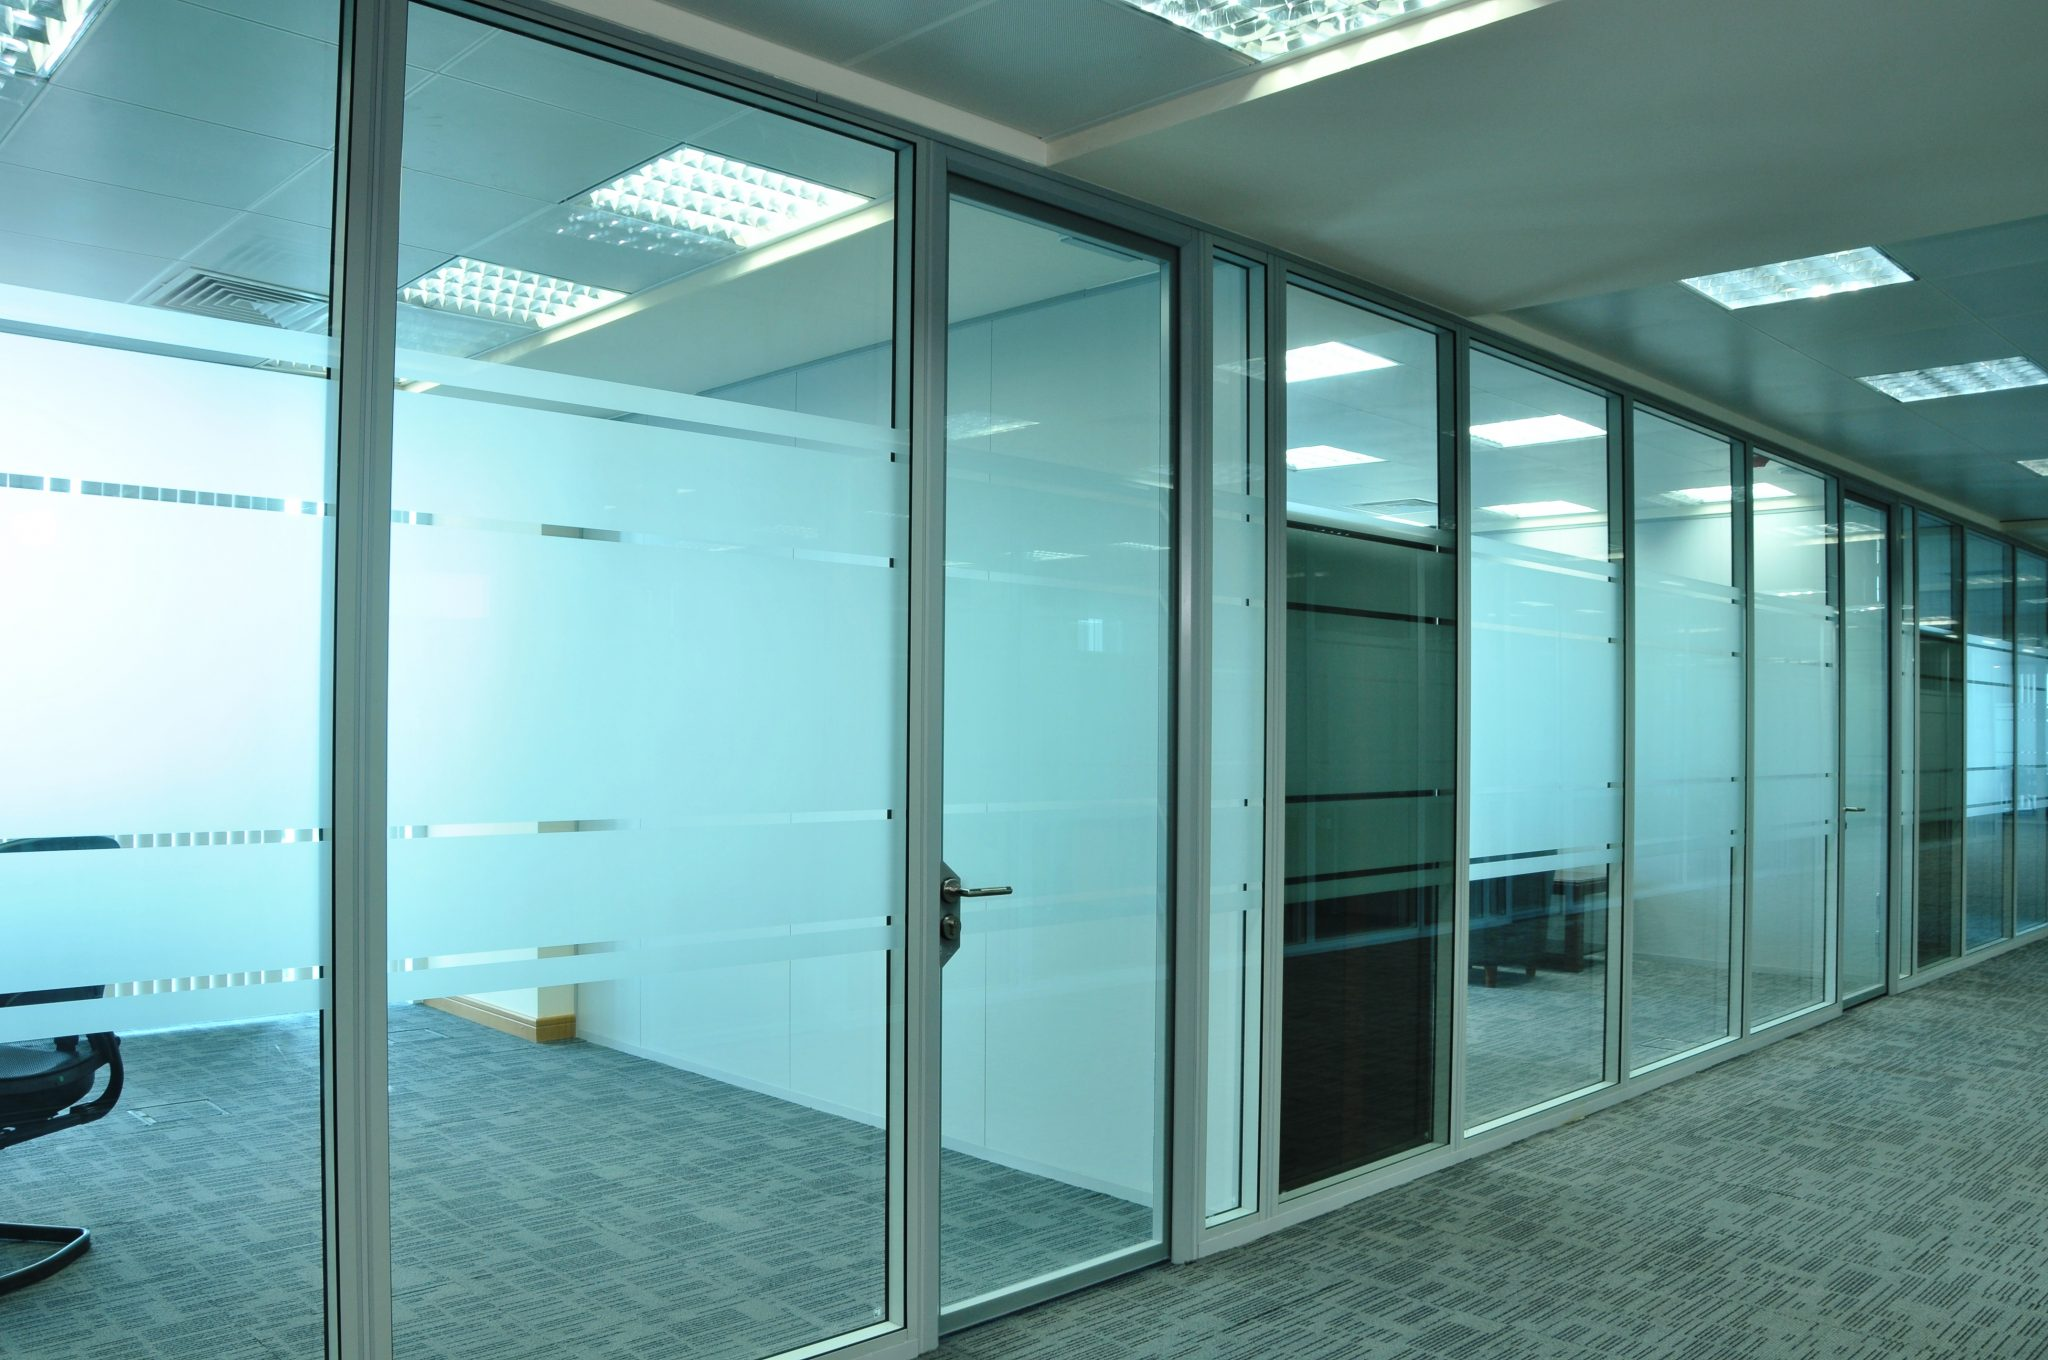 Glass Doors & Glass Doors - Romstor Office Partitioning Projects